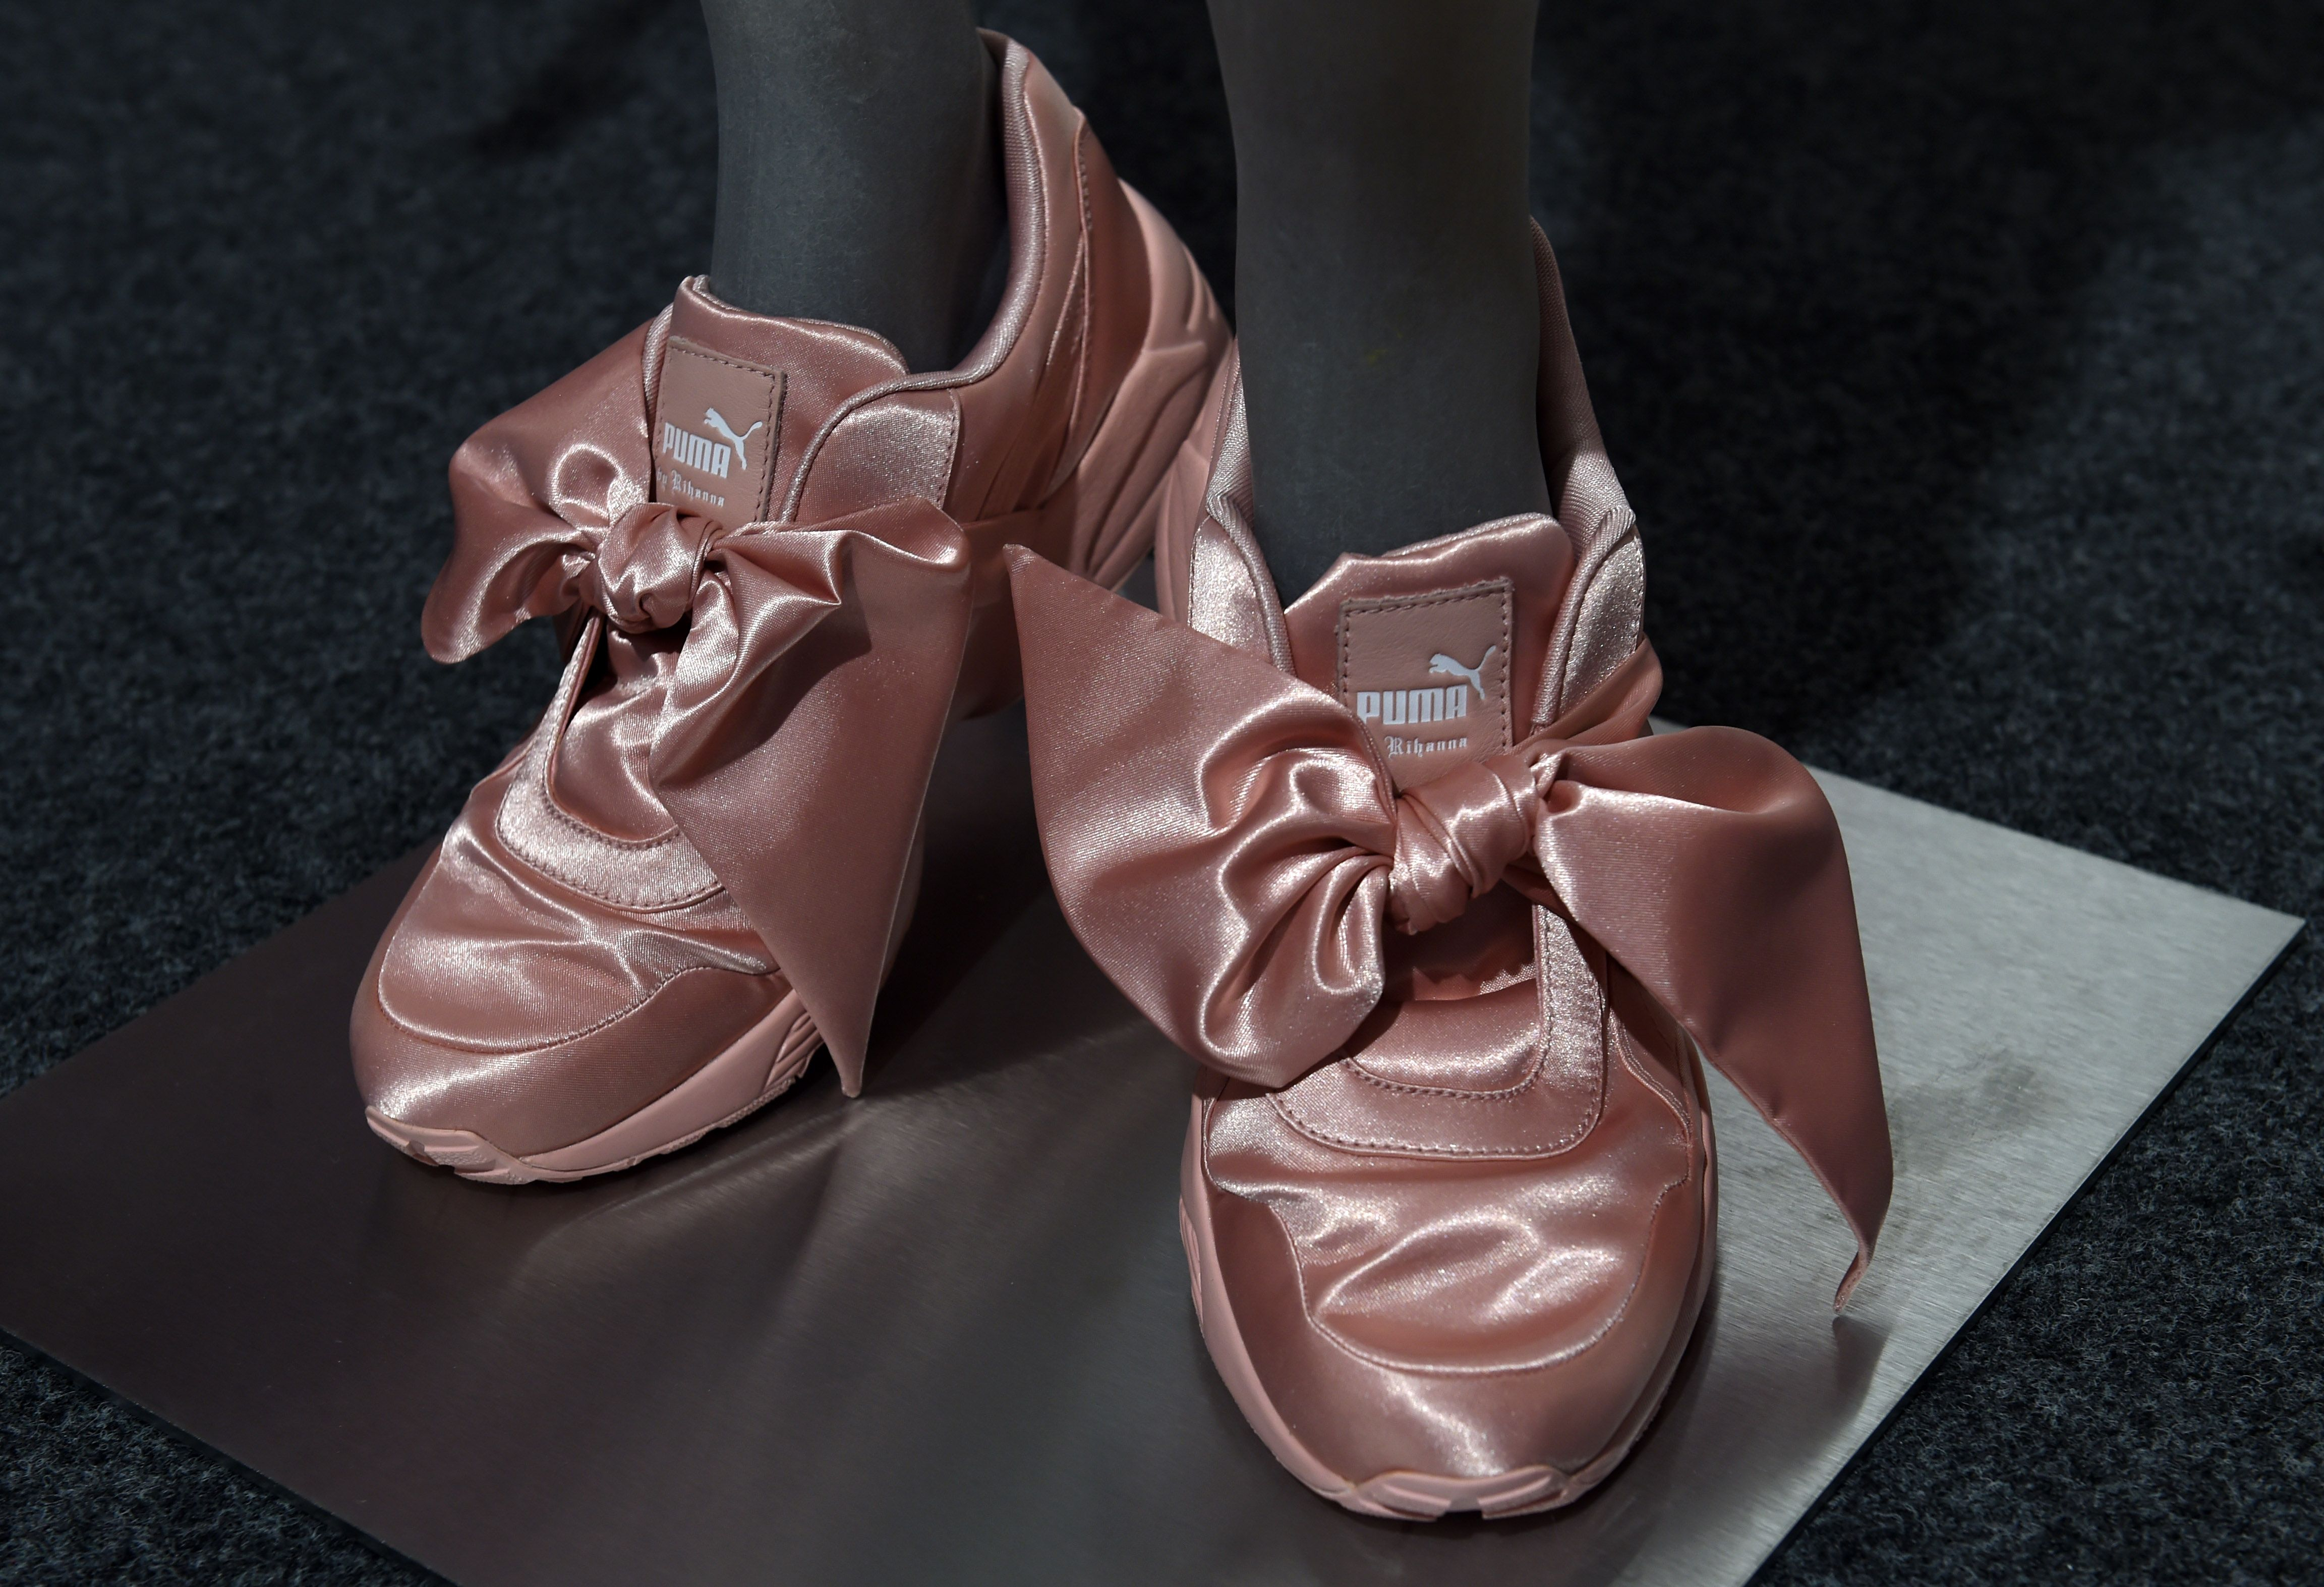 Rihanna's Latest Puma Sneaker Is Made of Satin And Impractical As ...